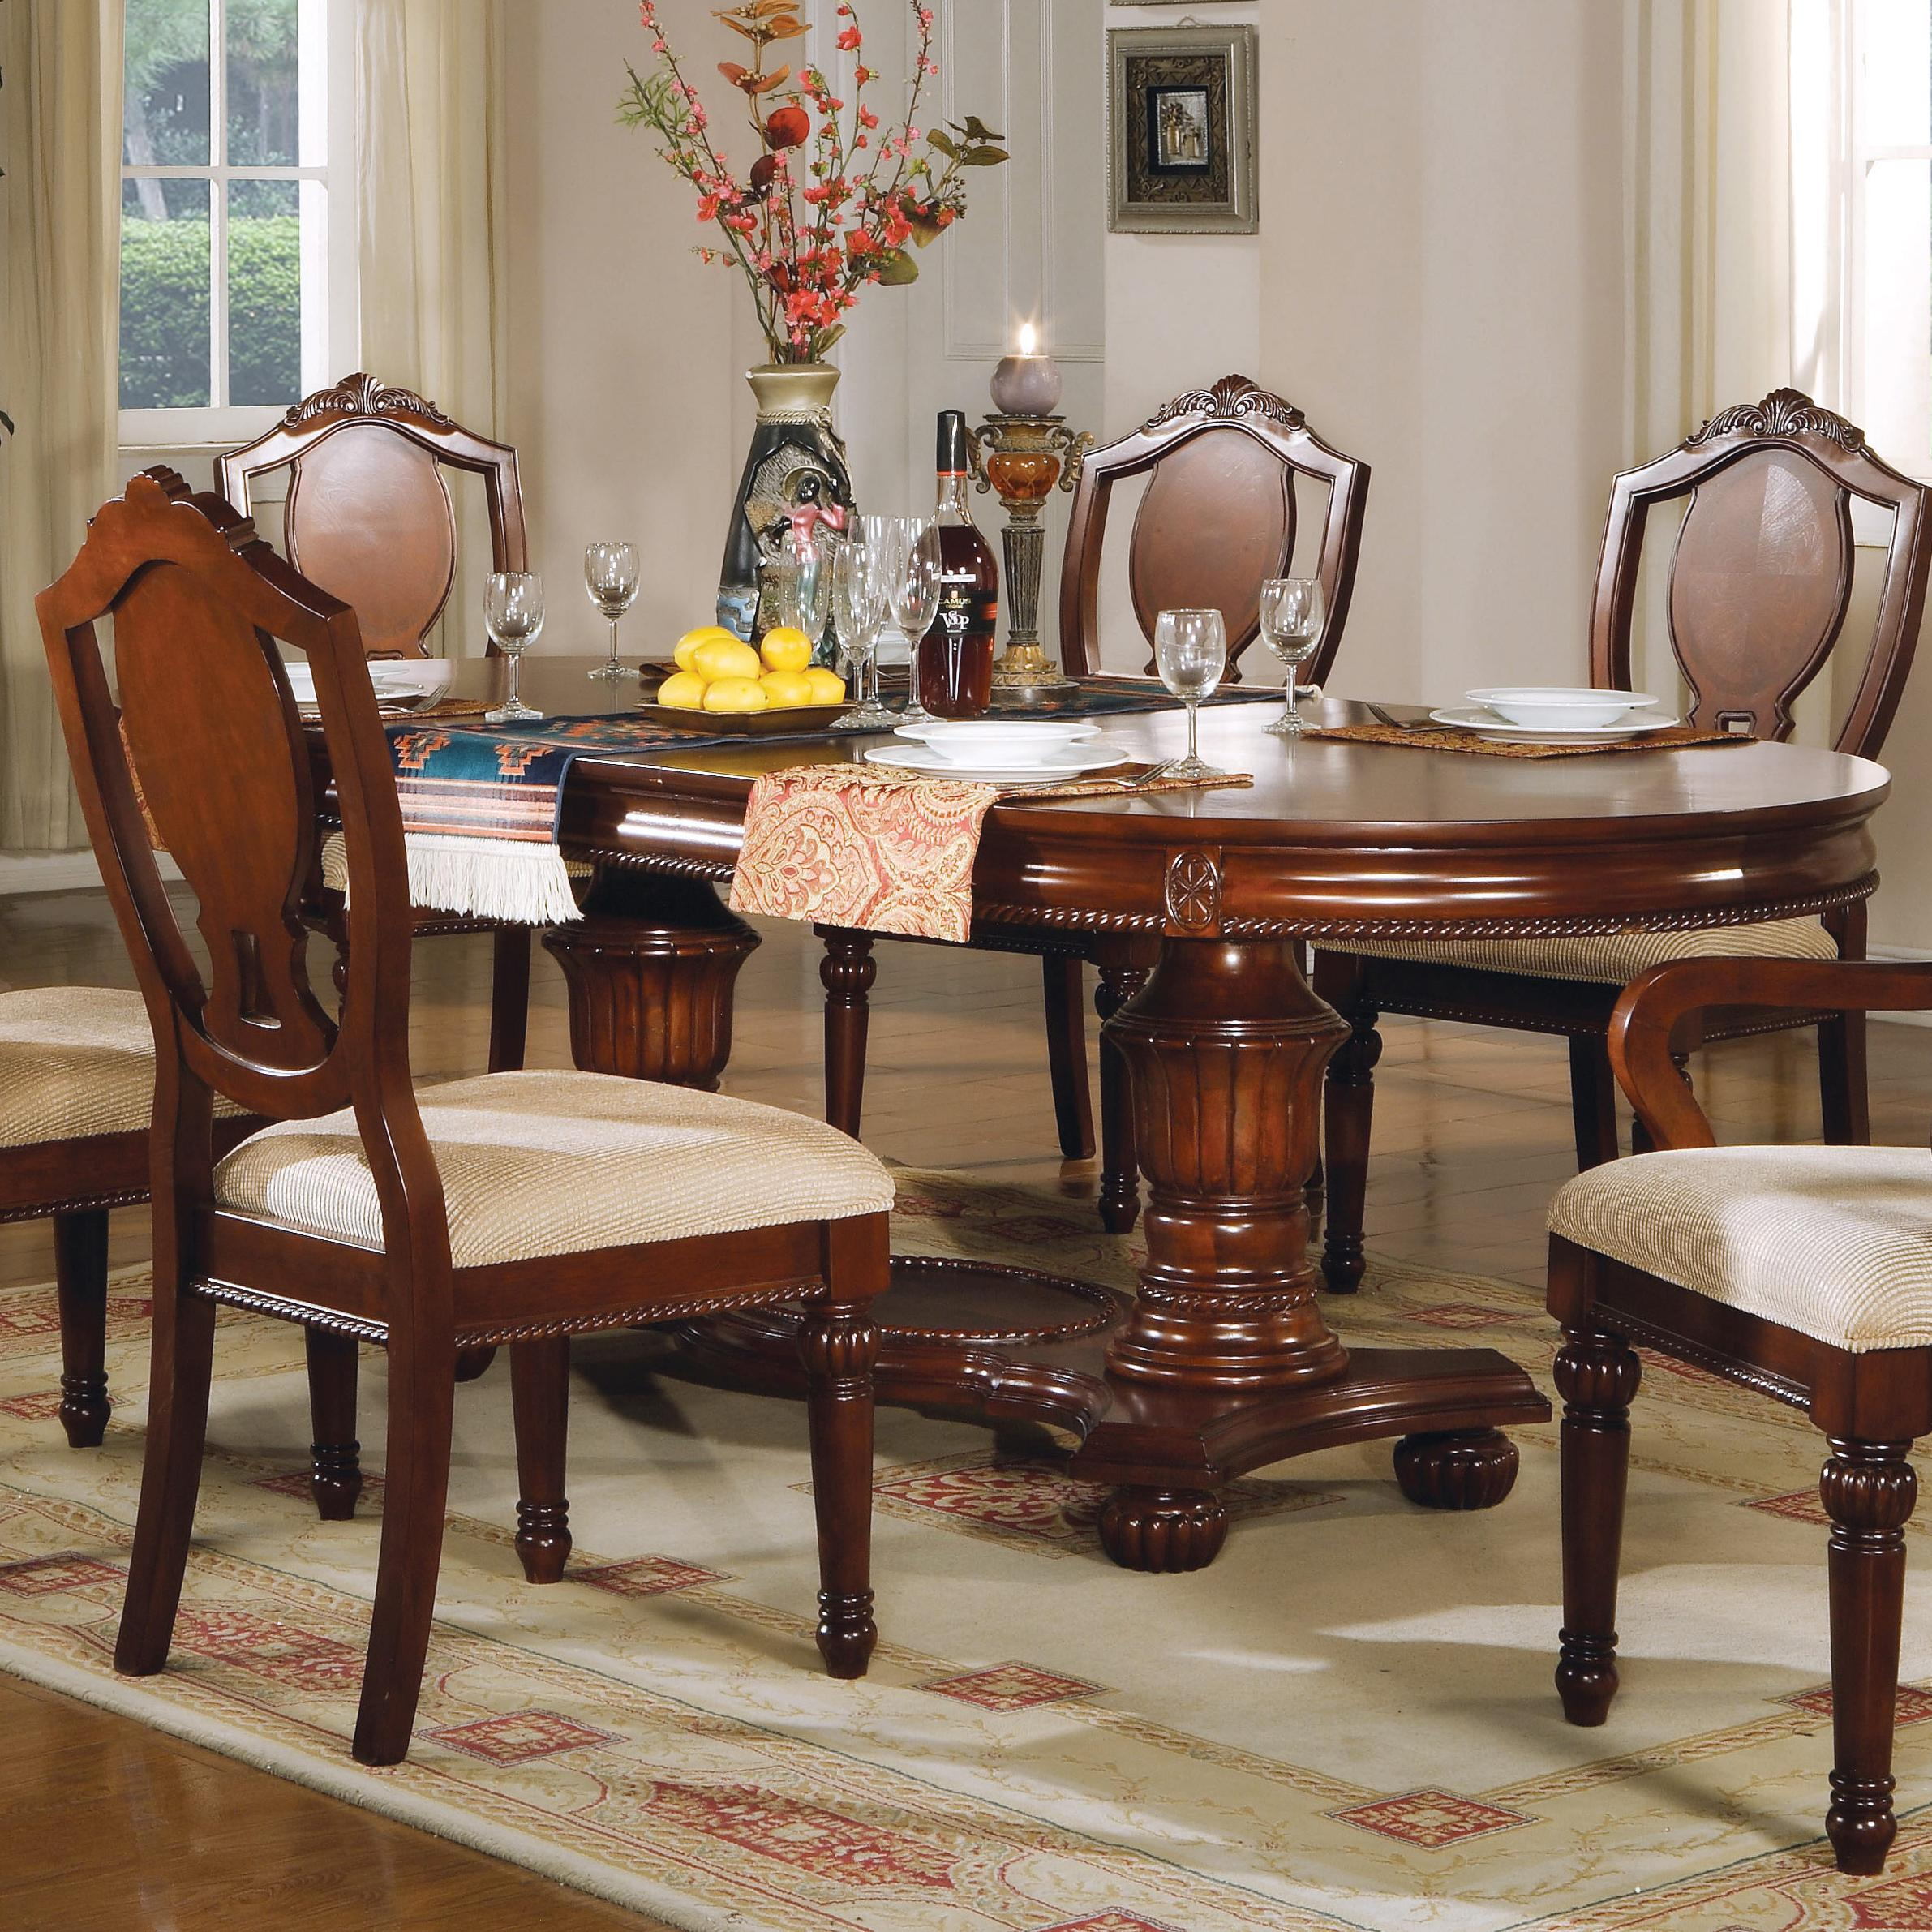 11800 Double Pedestal Table by Acme Furniture at Corner Furniture